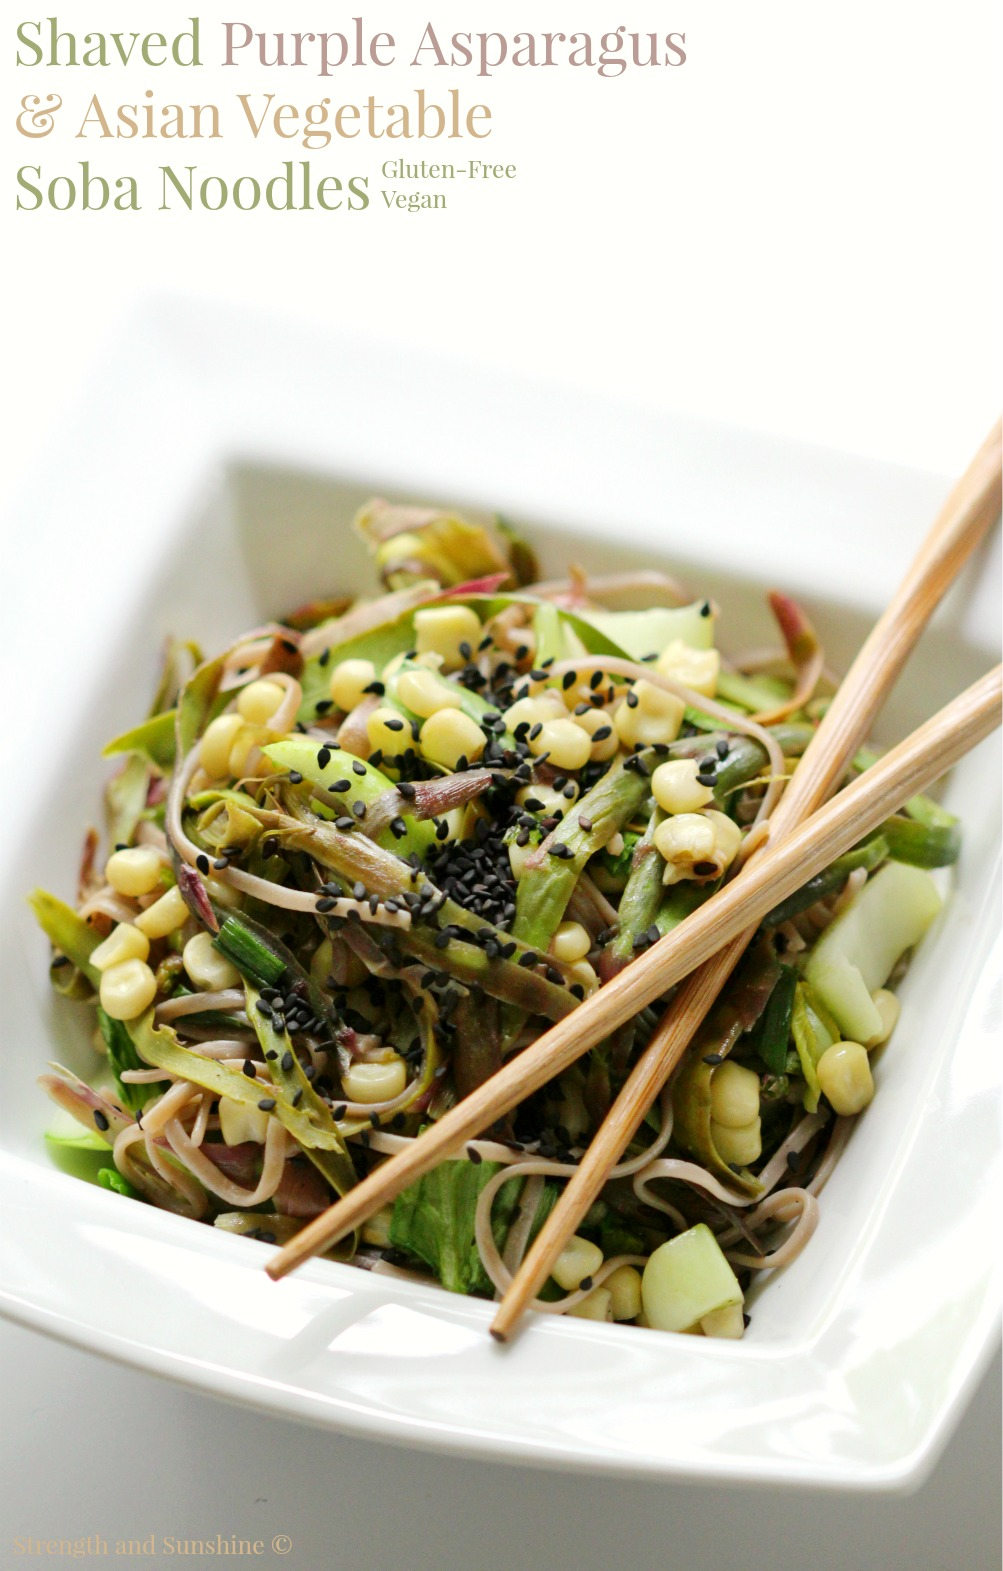 http://strengthandsunshine.com/shaved-purple-asparagus-asian-vegetable-soba-noodles/